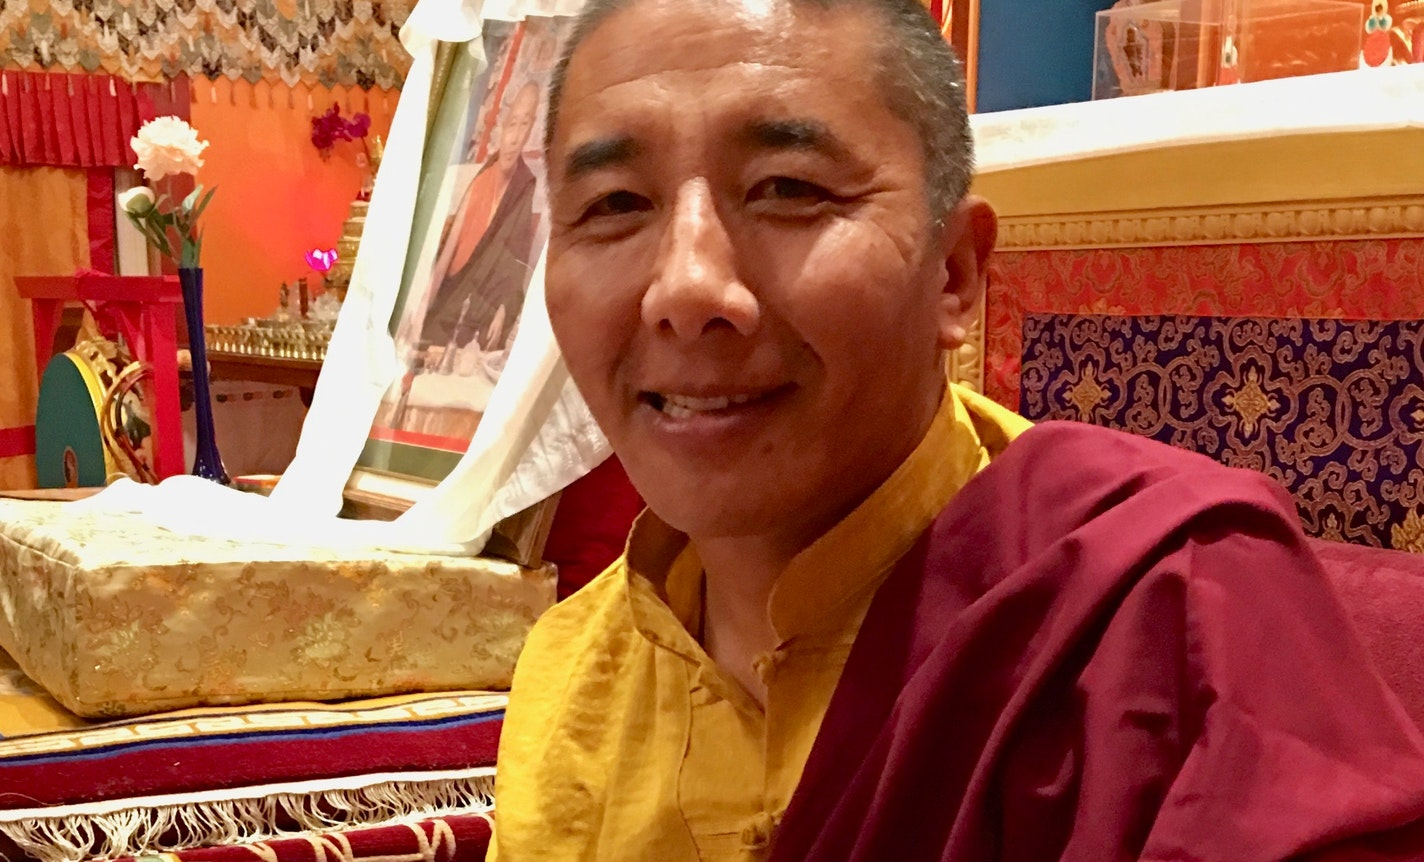 Transforming Suffering Into Compassion with Khenpo Paljor